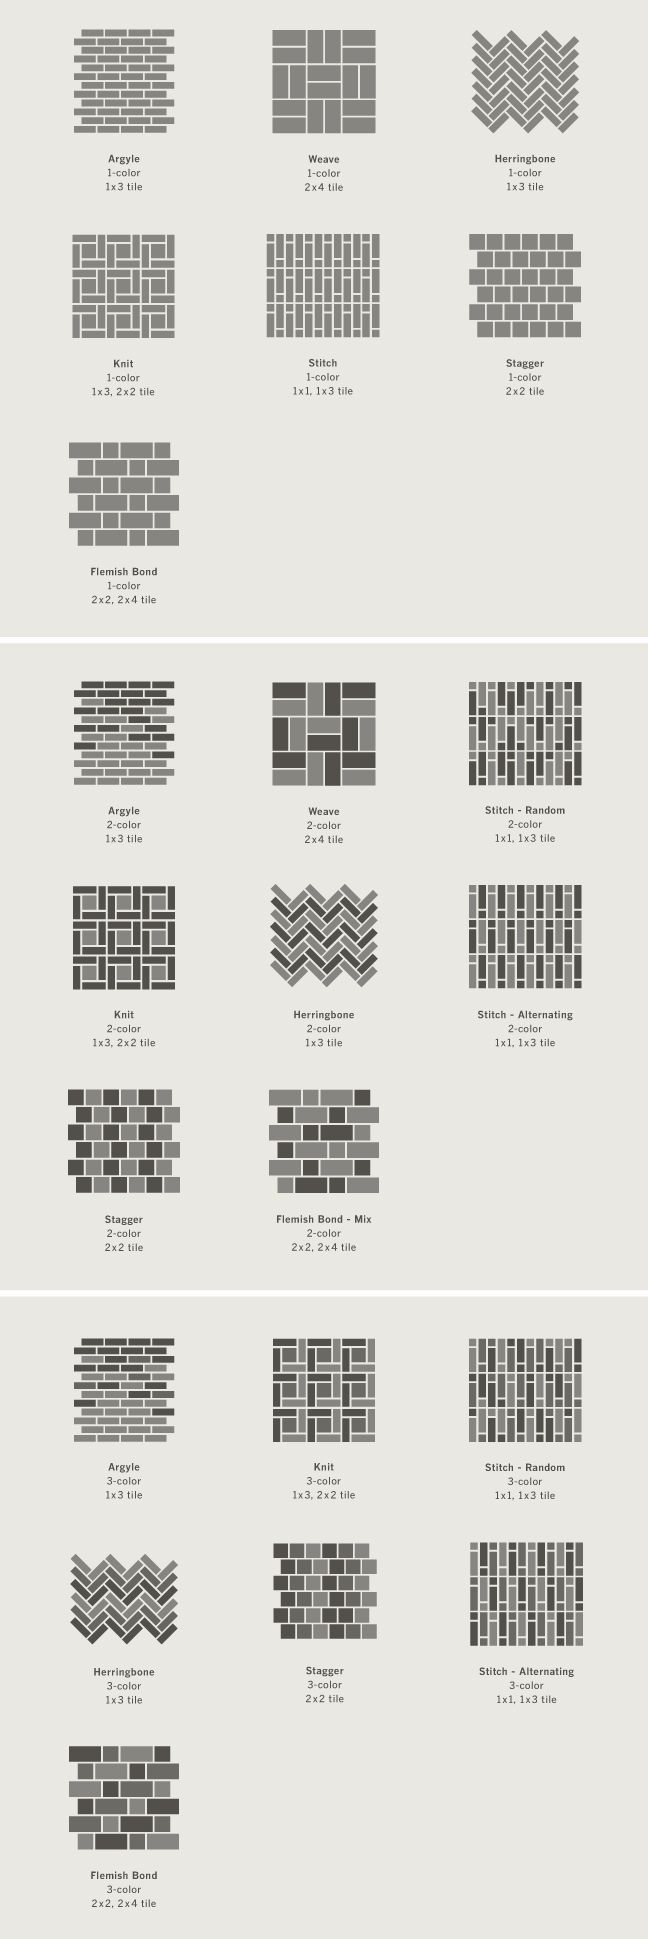 Floor tiles can be laid in many patterns to create a unique space. Here are some classic patterns to set your mind racing.